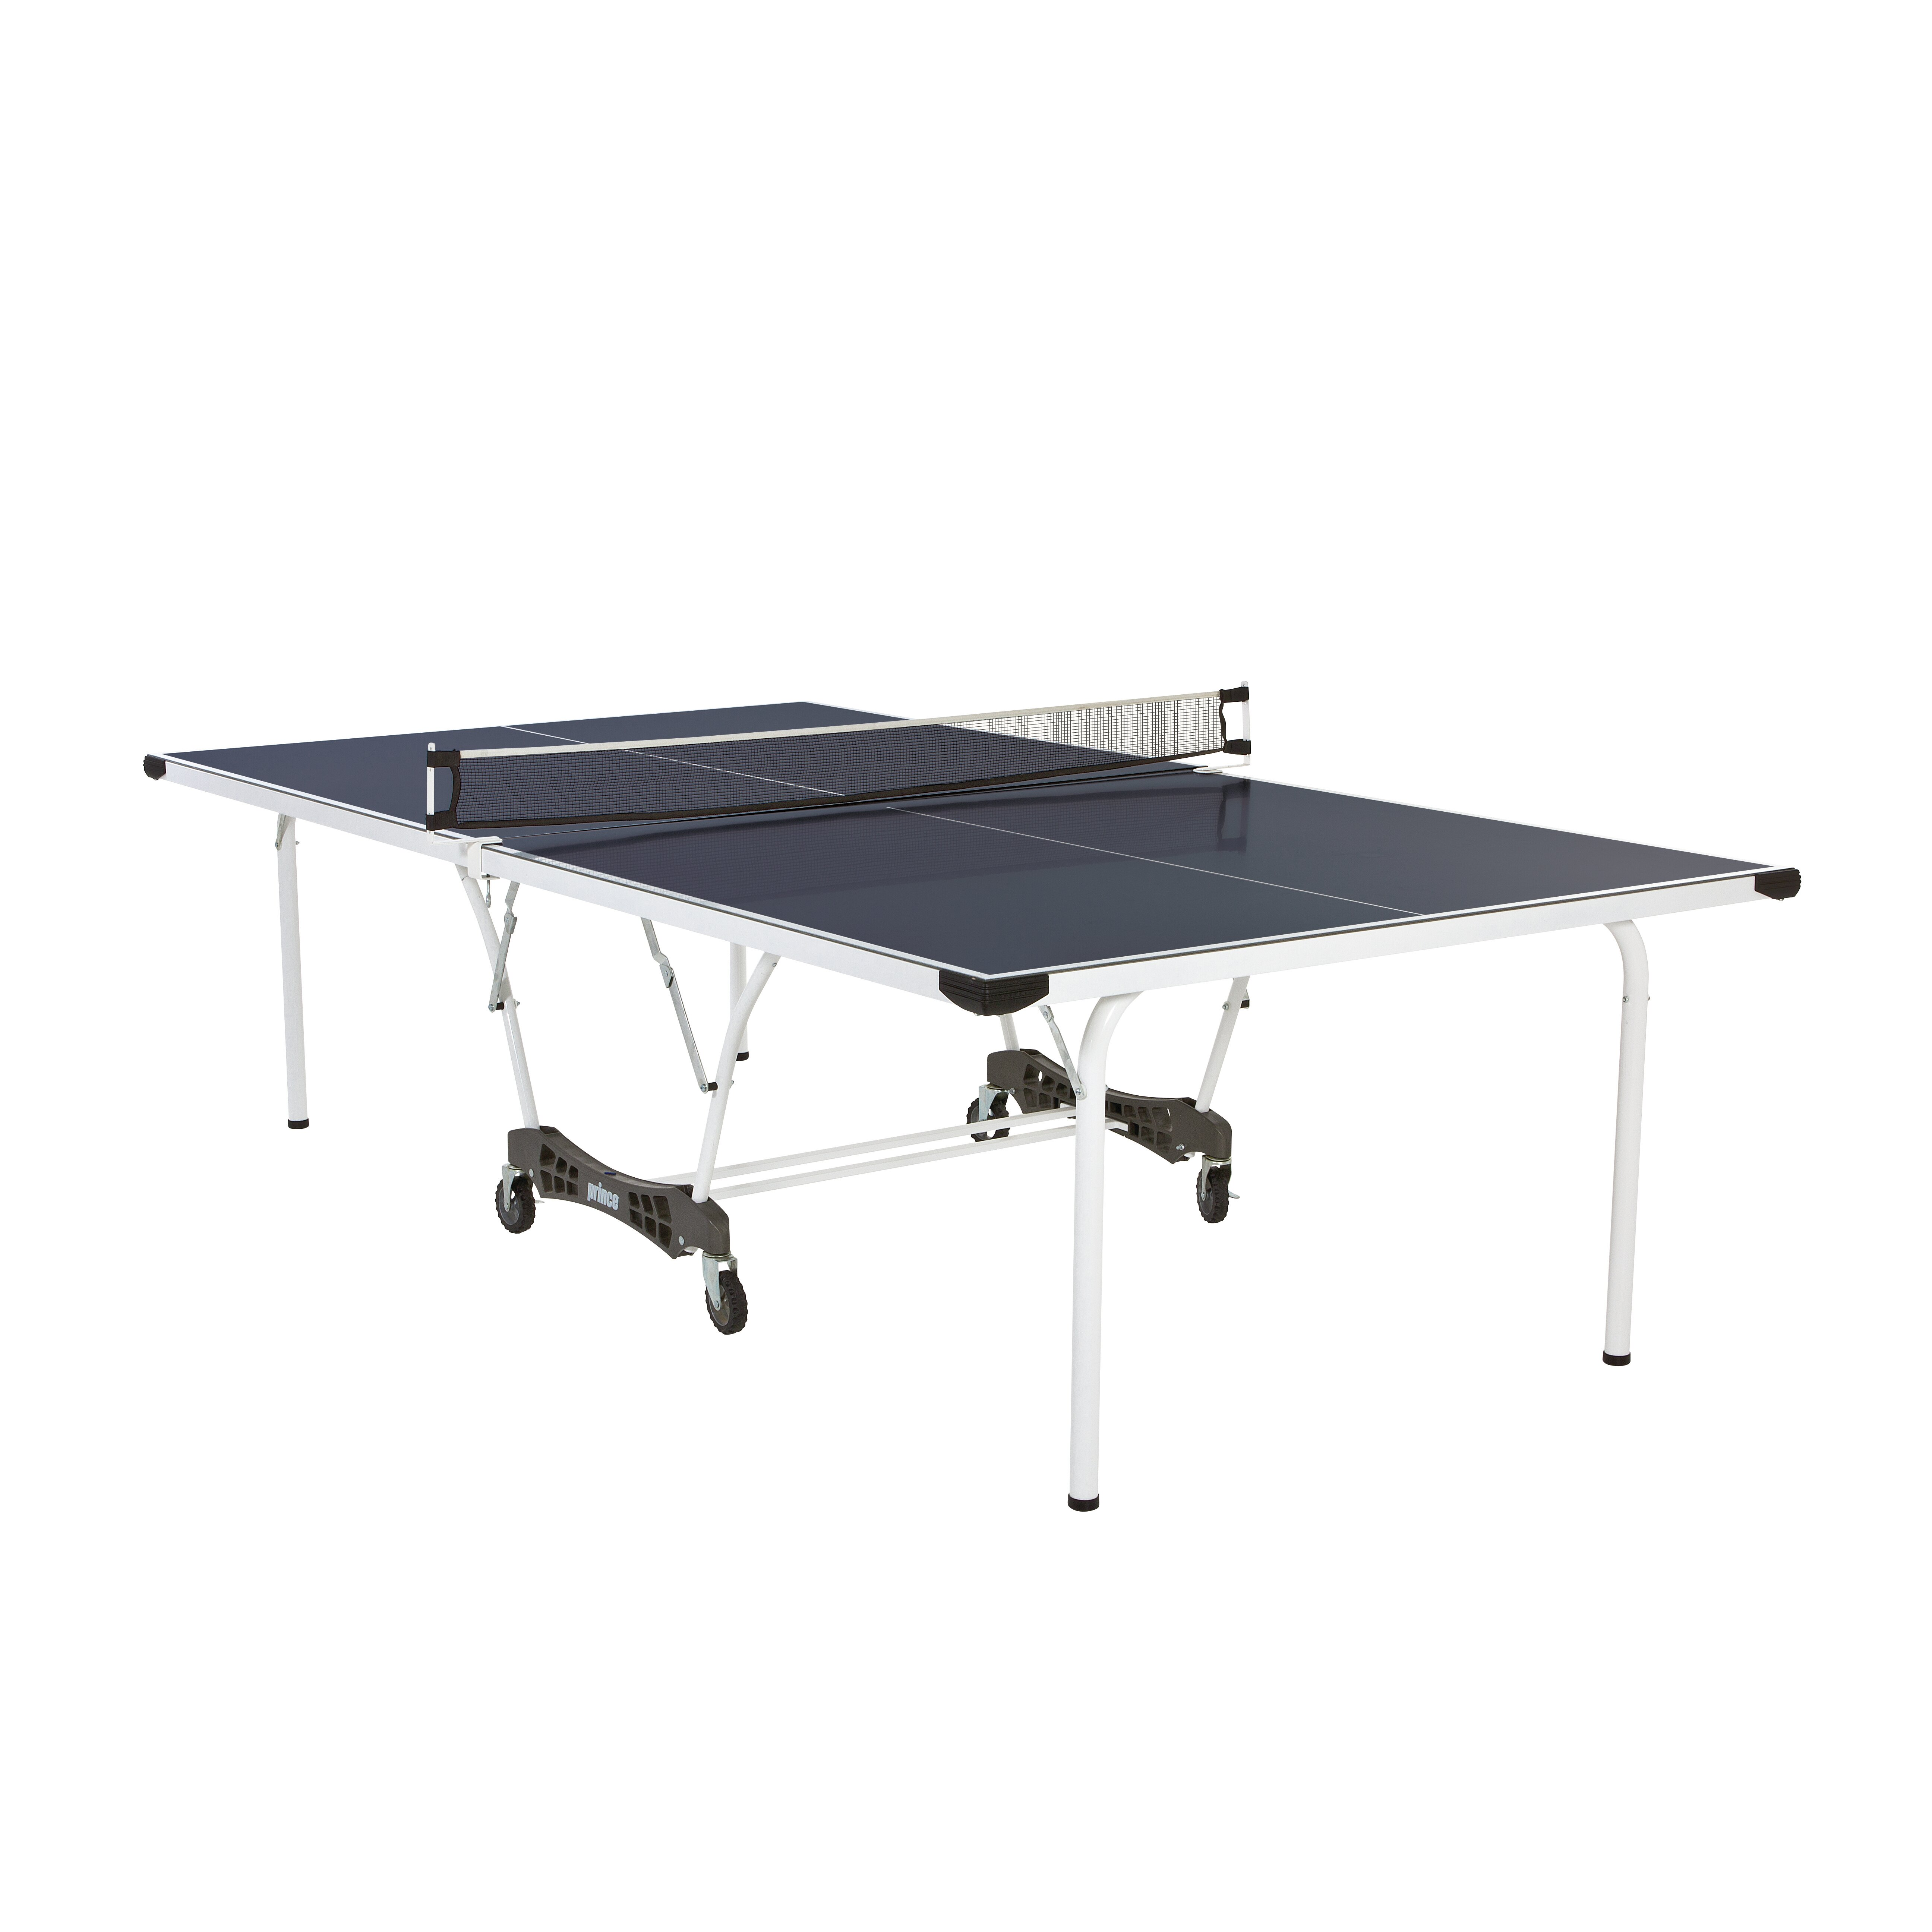 Stiga element outdoor table tennis table reviews - Stiga outdoor table tennis table ...